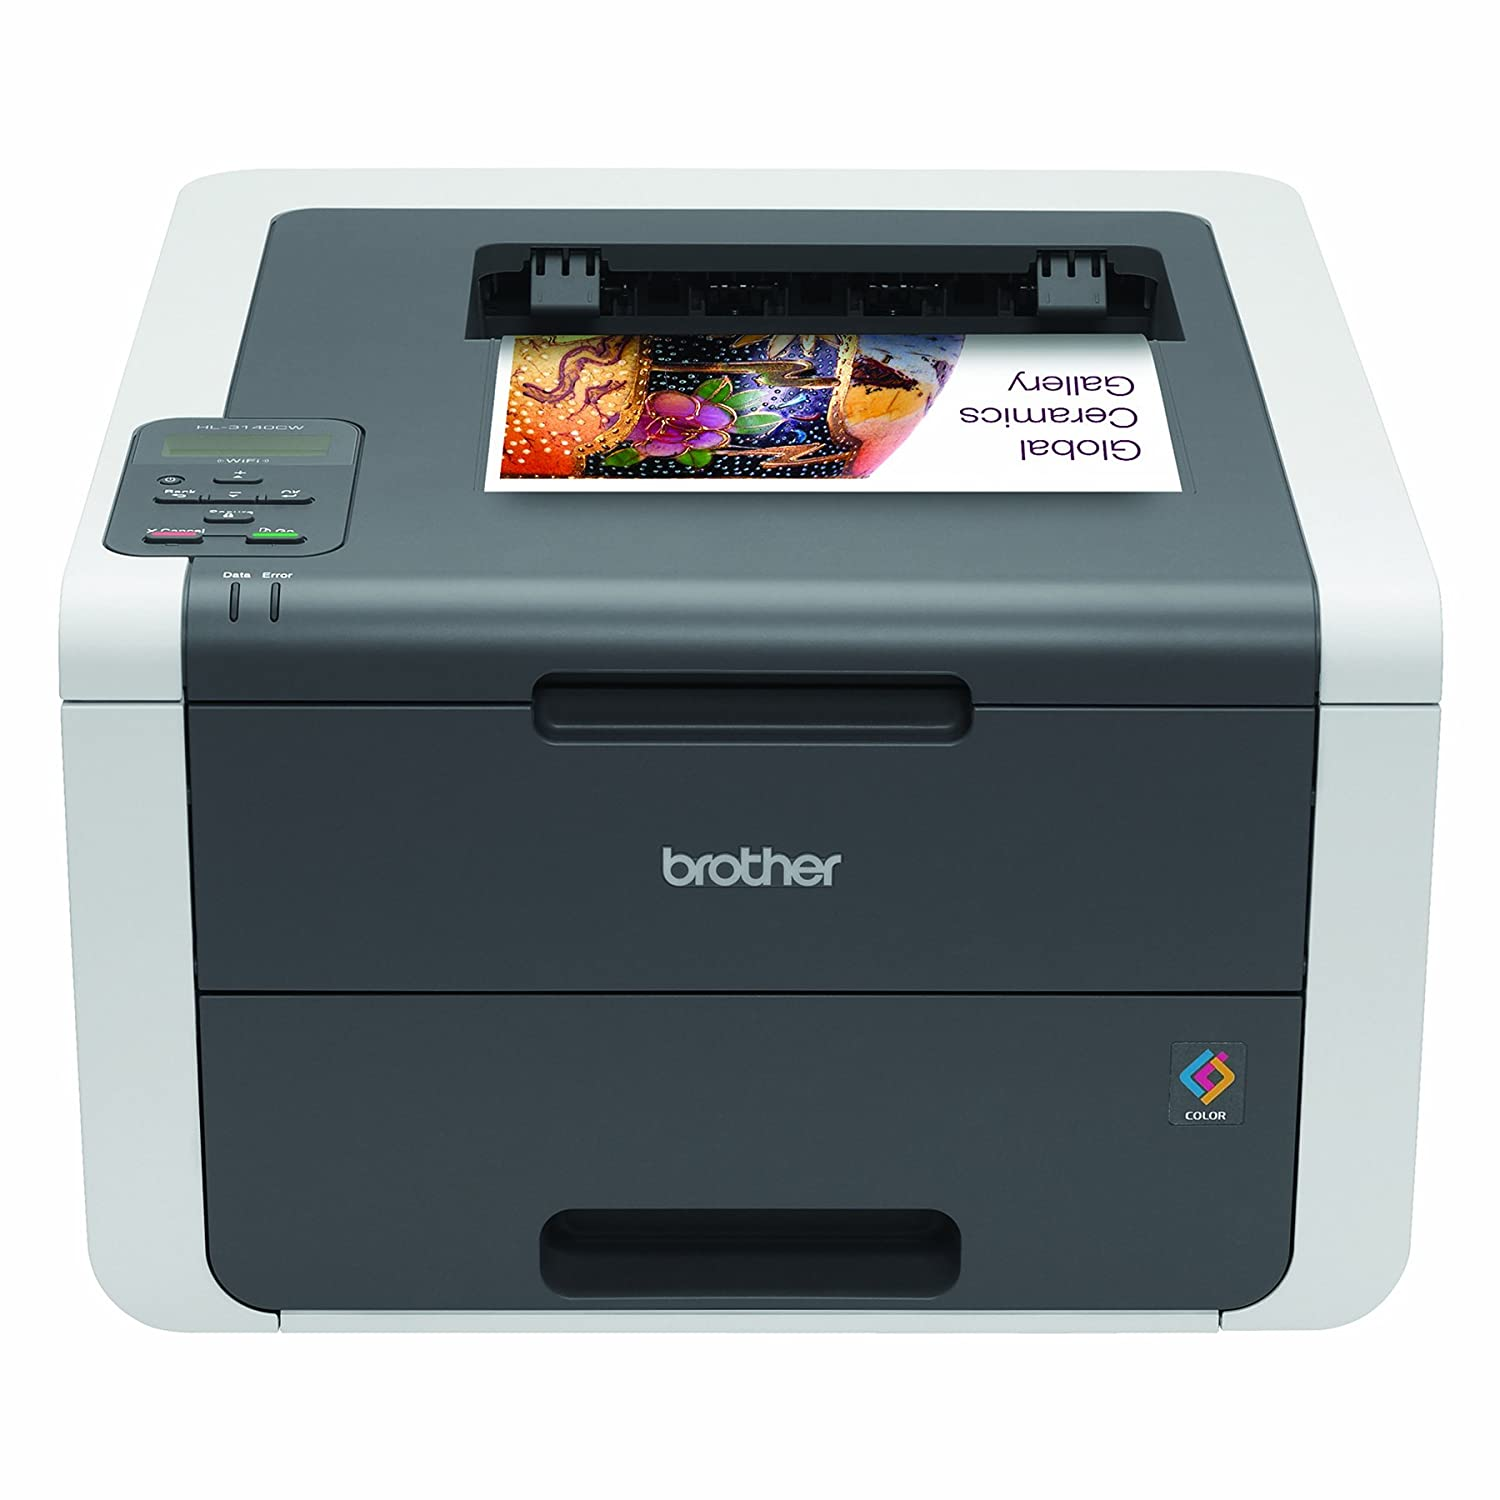 Brother Printer HL3140CW Digital Color Printer with Wireless Networking 	$131.42